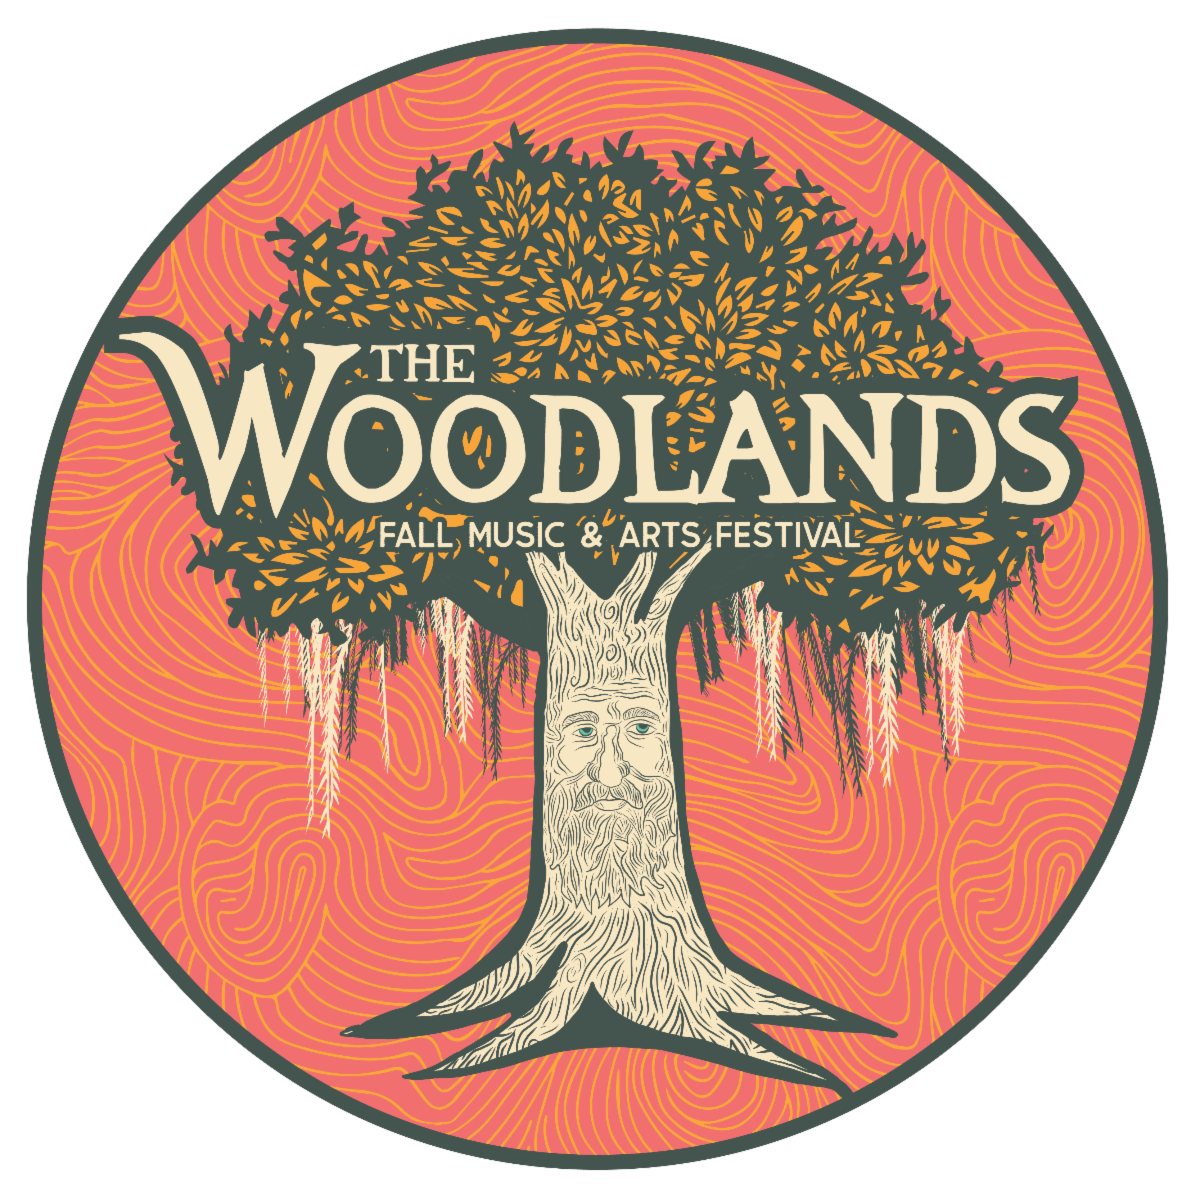 Umphrey's McGee Announces Inaugural Woodlands Fall Music & Arts Festival